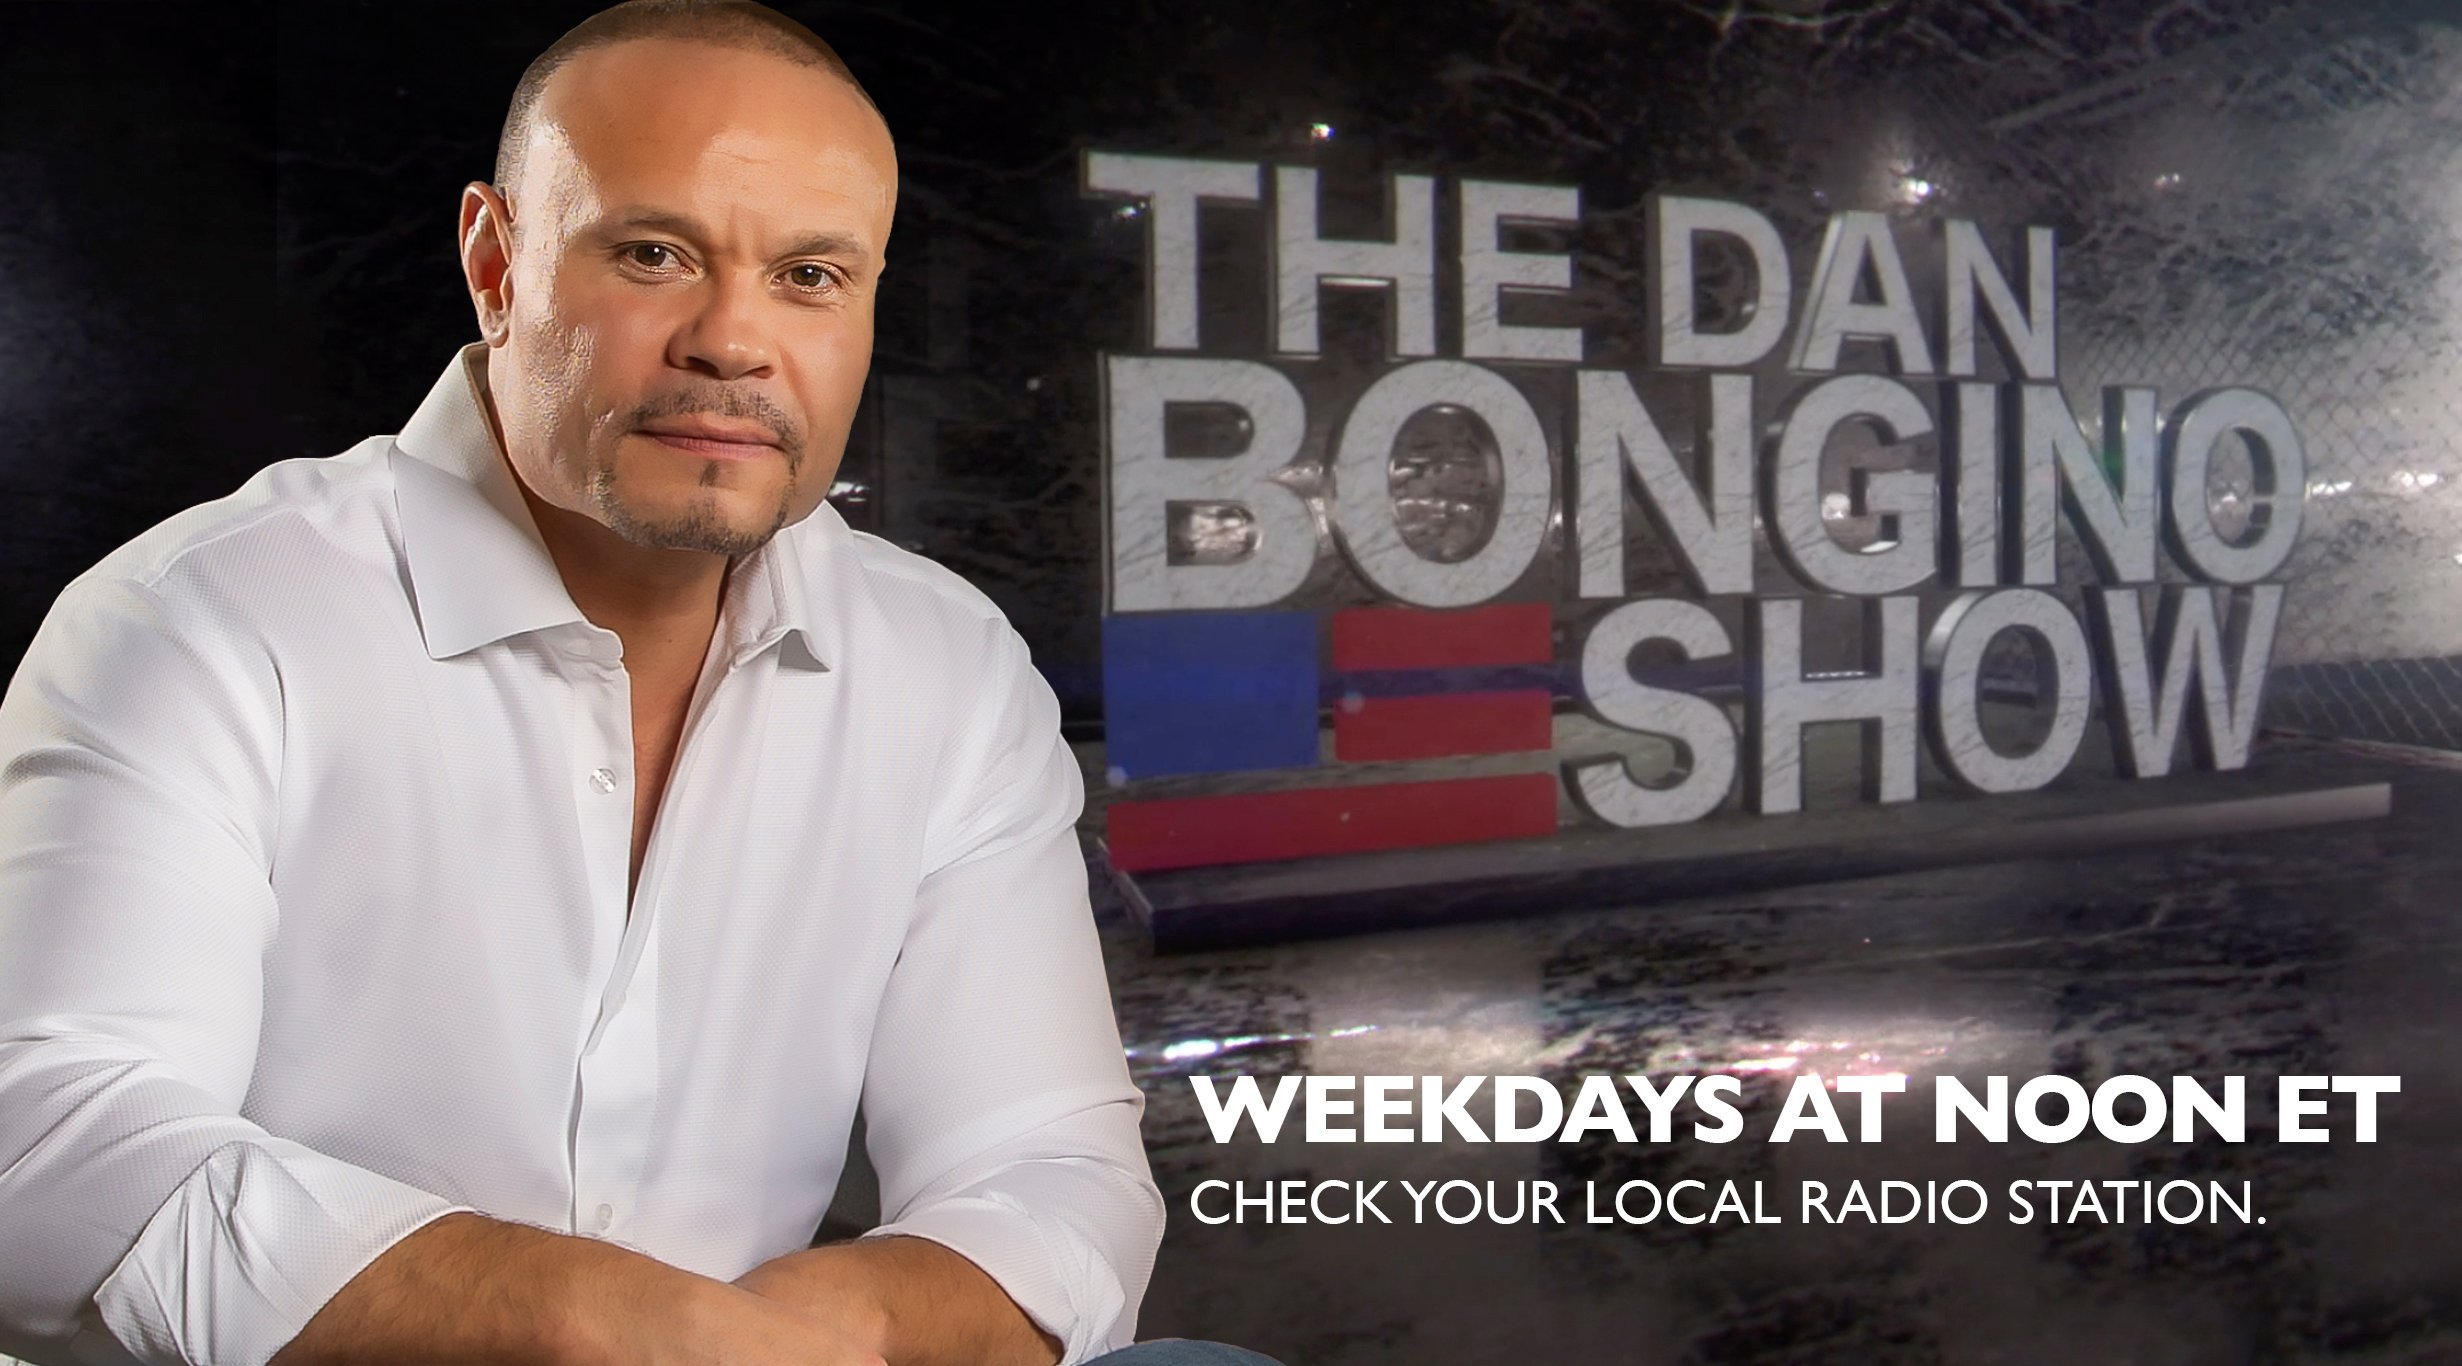 Dan Bongino Radio Show Debuts Today With Special Guest President Trump